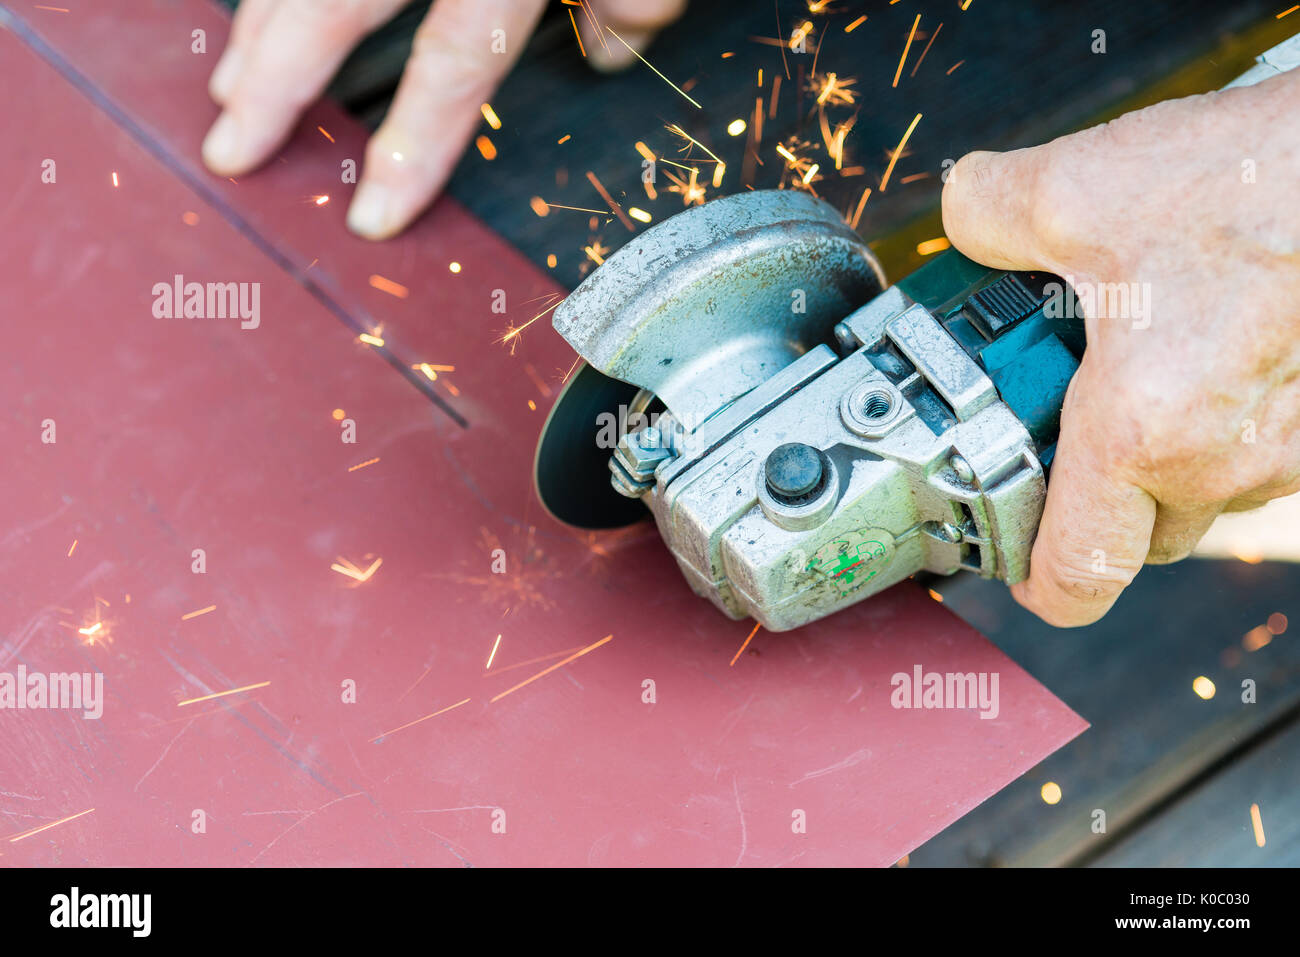 sawing metal with electric grinder - Stock Image